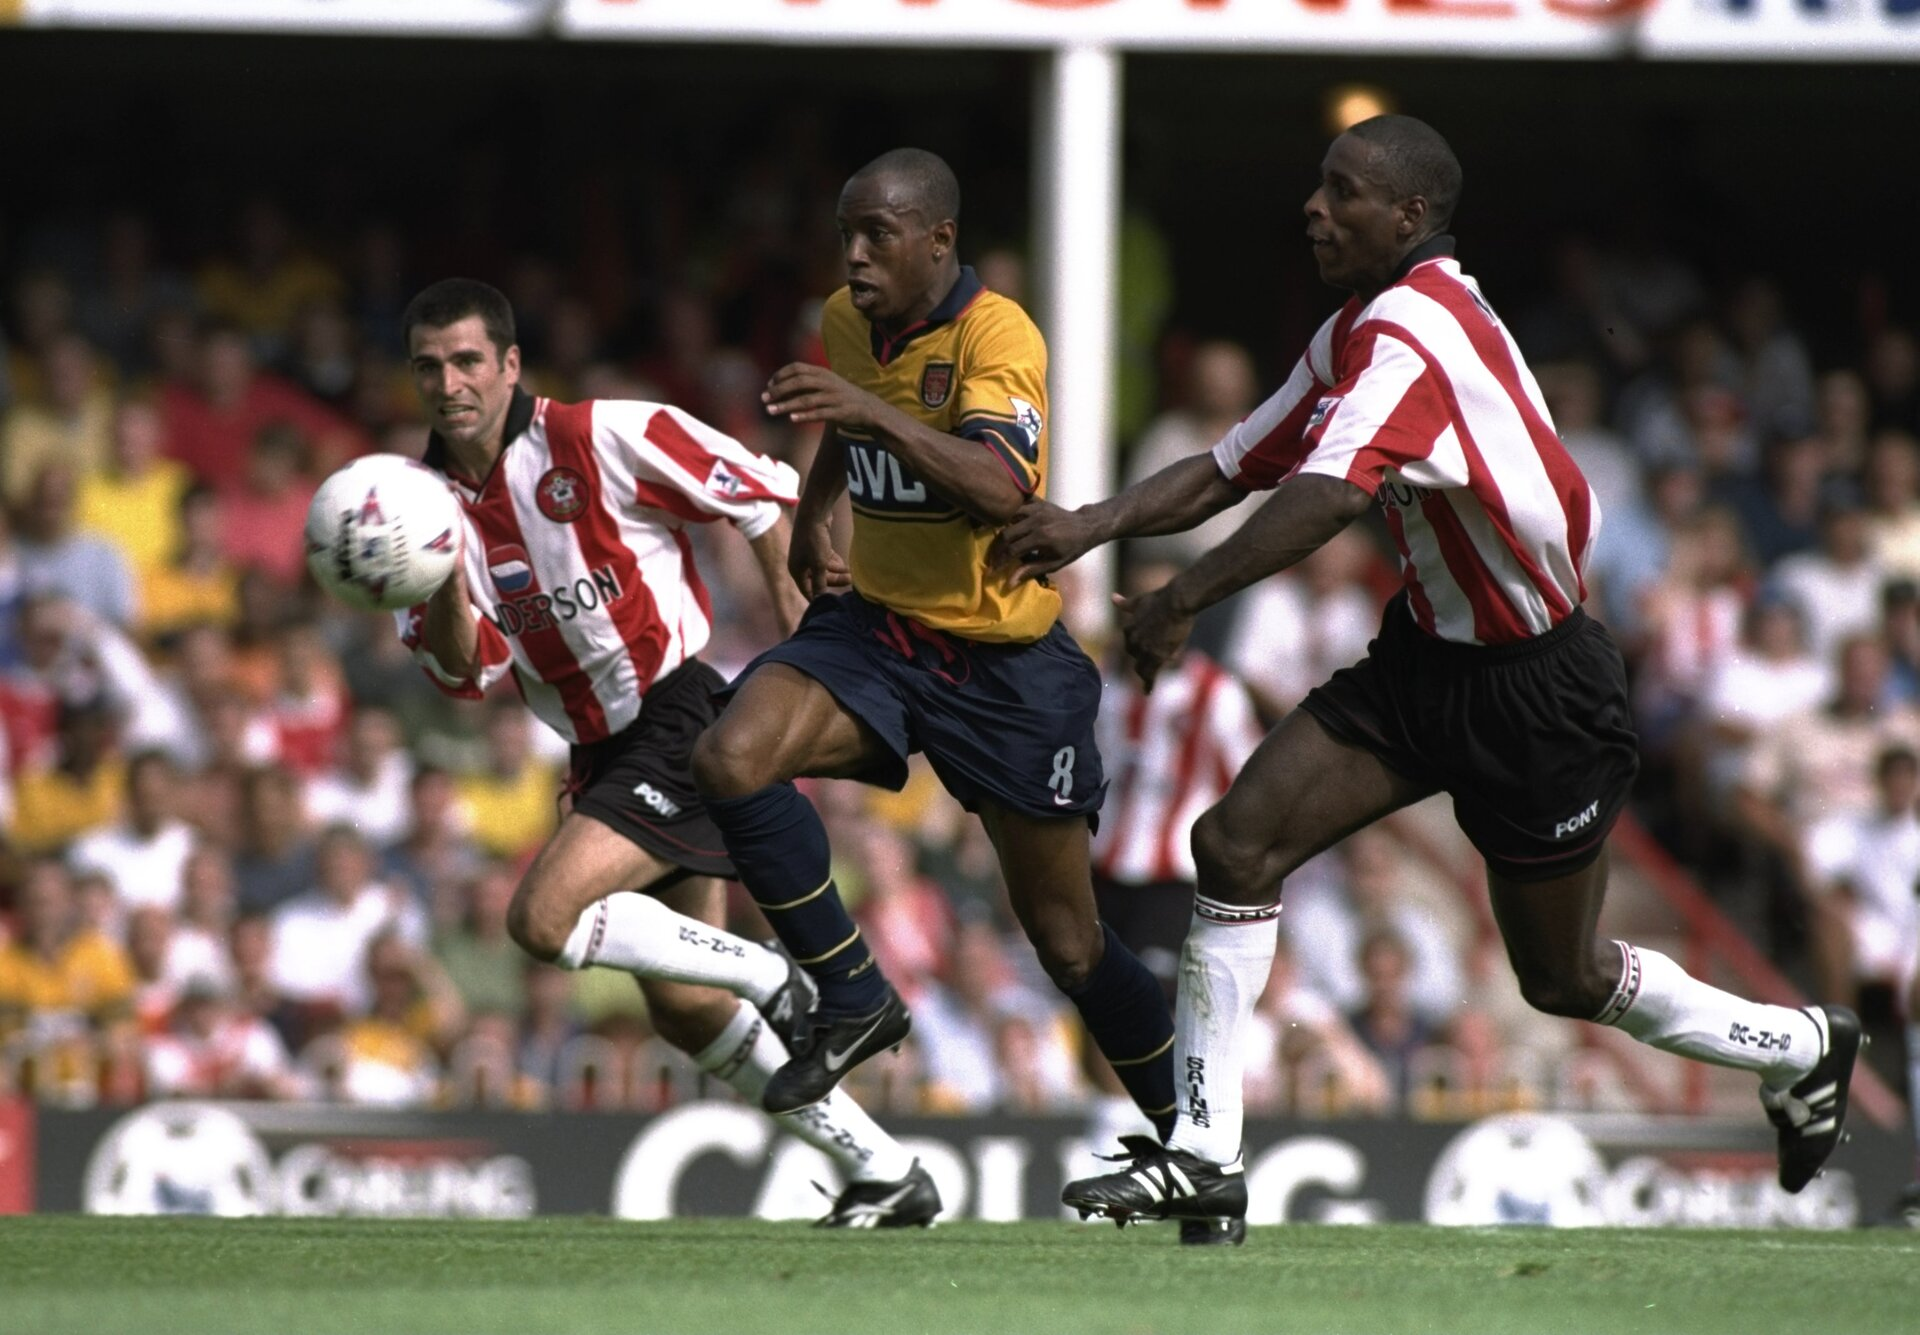 23 Aug 1997:  Ian Wright of Arsenal (centre) sprints away from Ken Monkou (right) and Francis Benali of Southampton during the FA Carling Premiership match at The Dell in Southampton, England. Arsenal won the match 1-3. \ Mandatory Credit: Allsport UK /Allsport